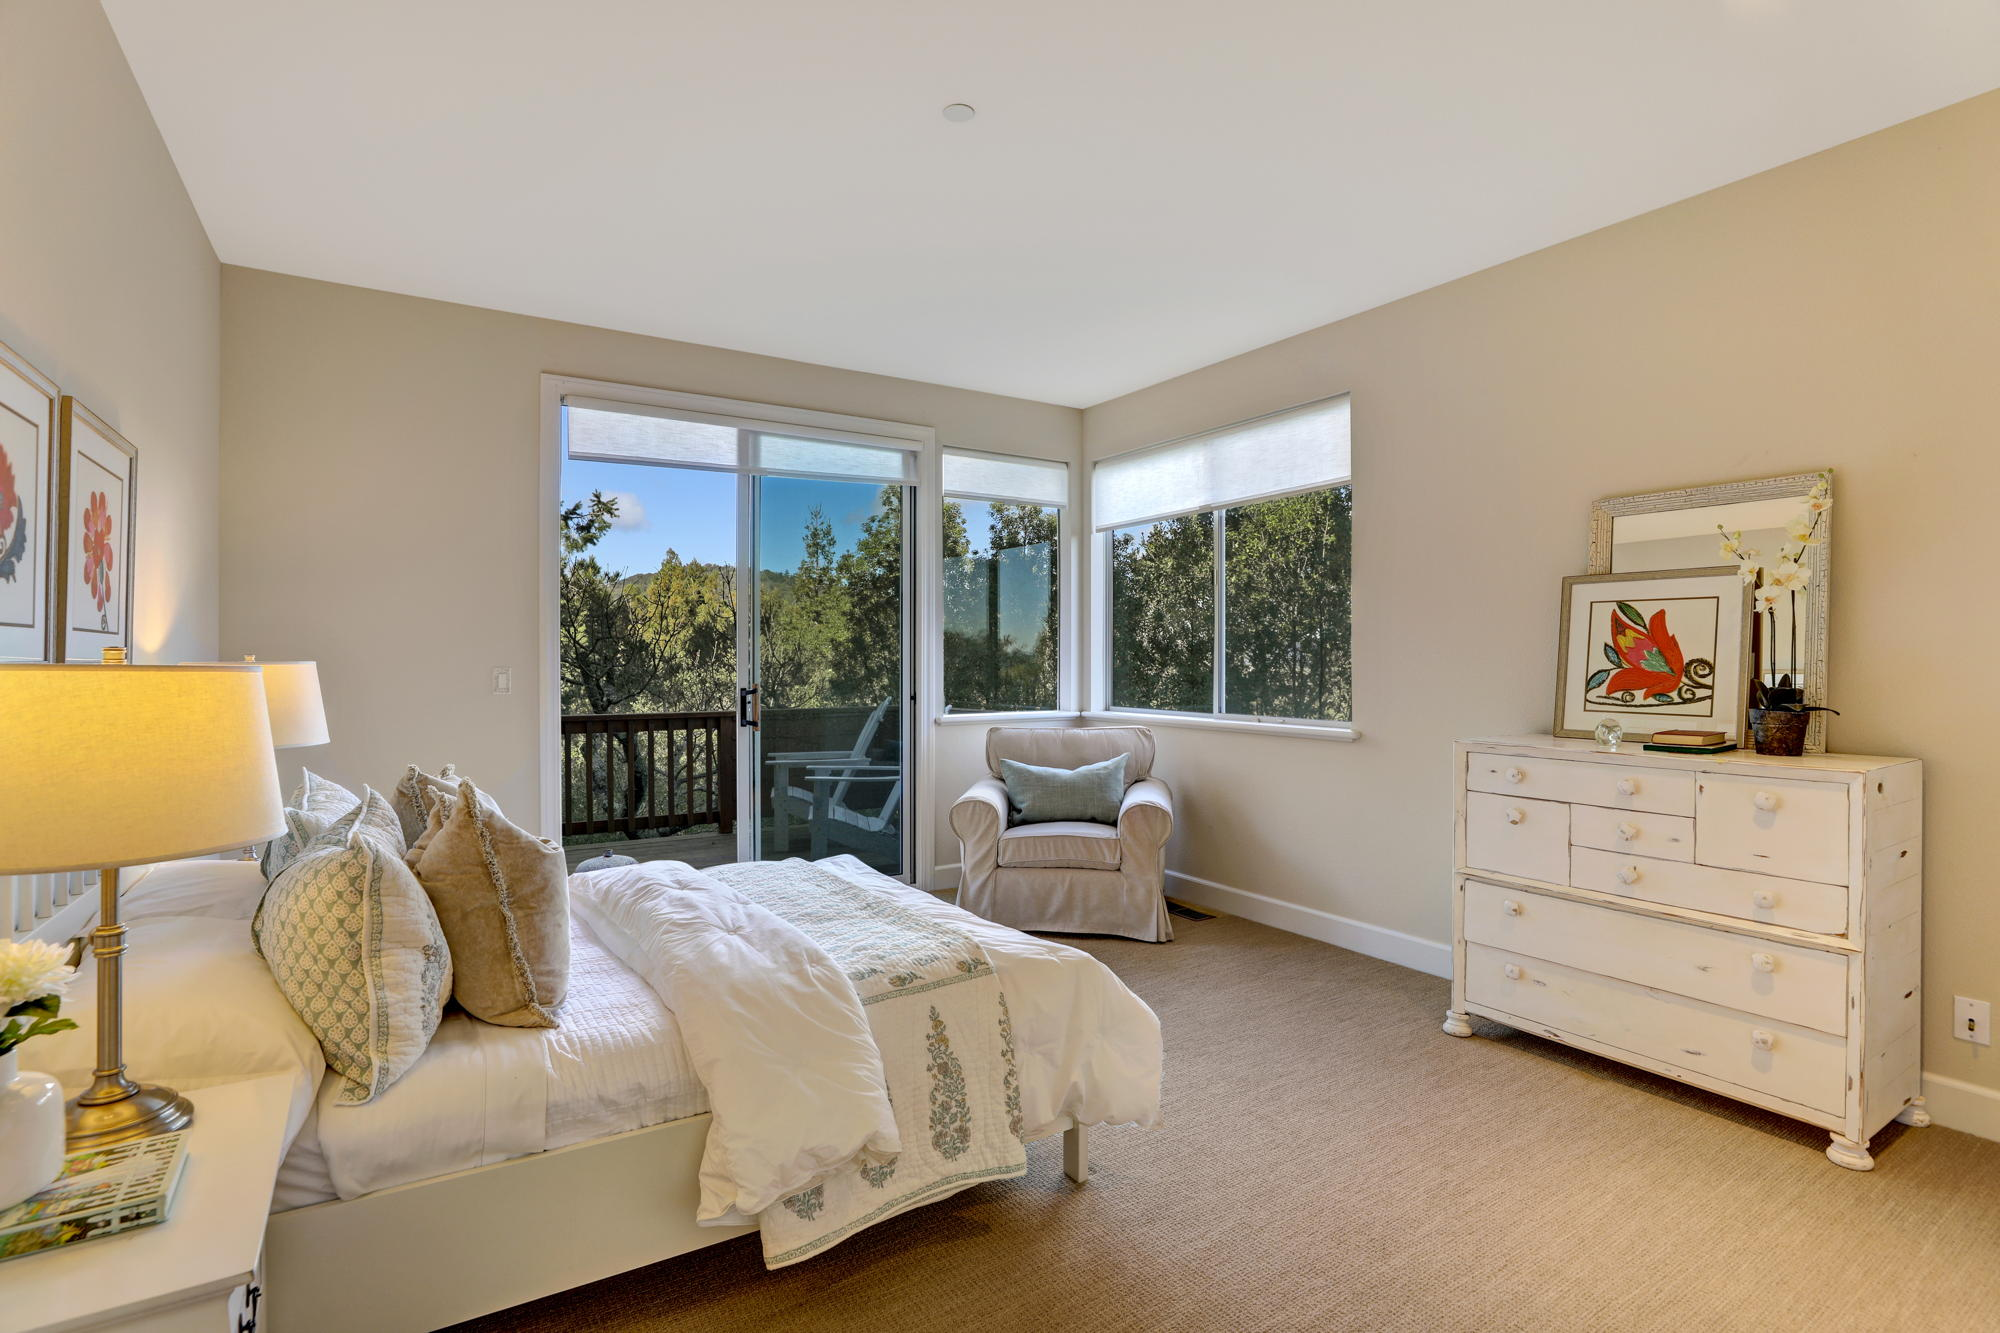 231 Marin Vista Larkspur #1 Realtor - 54 - Own Marin with Compass Real Estate.jpg